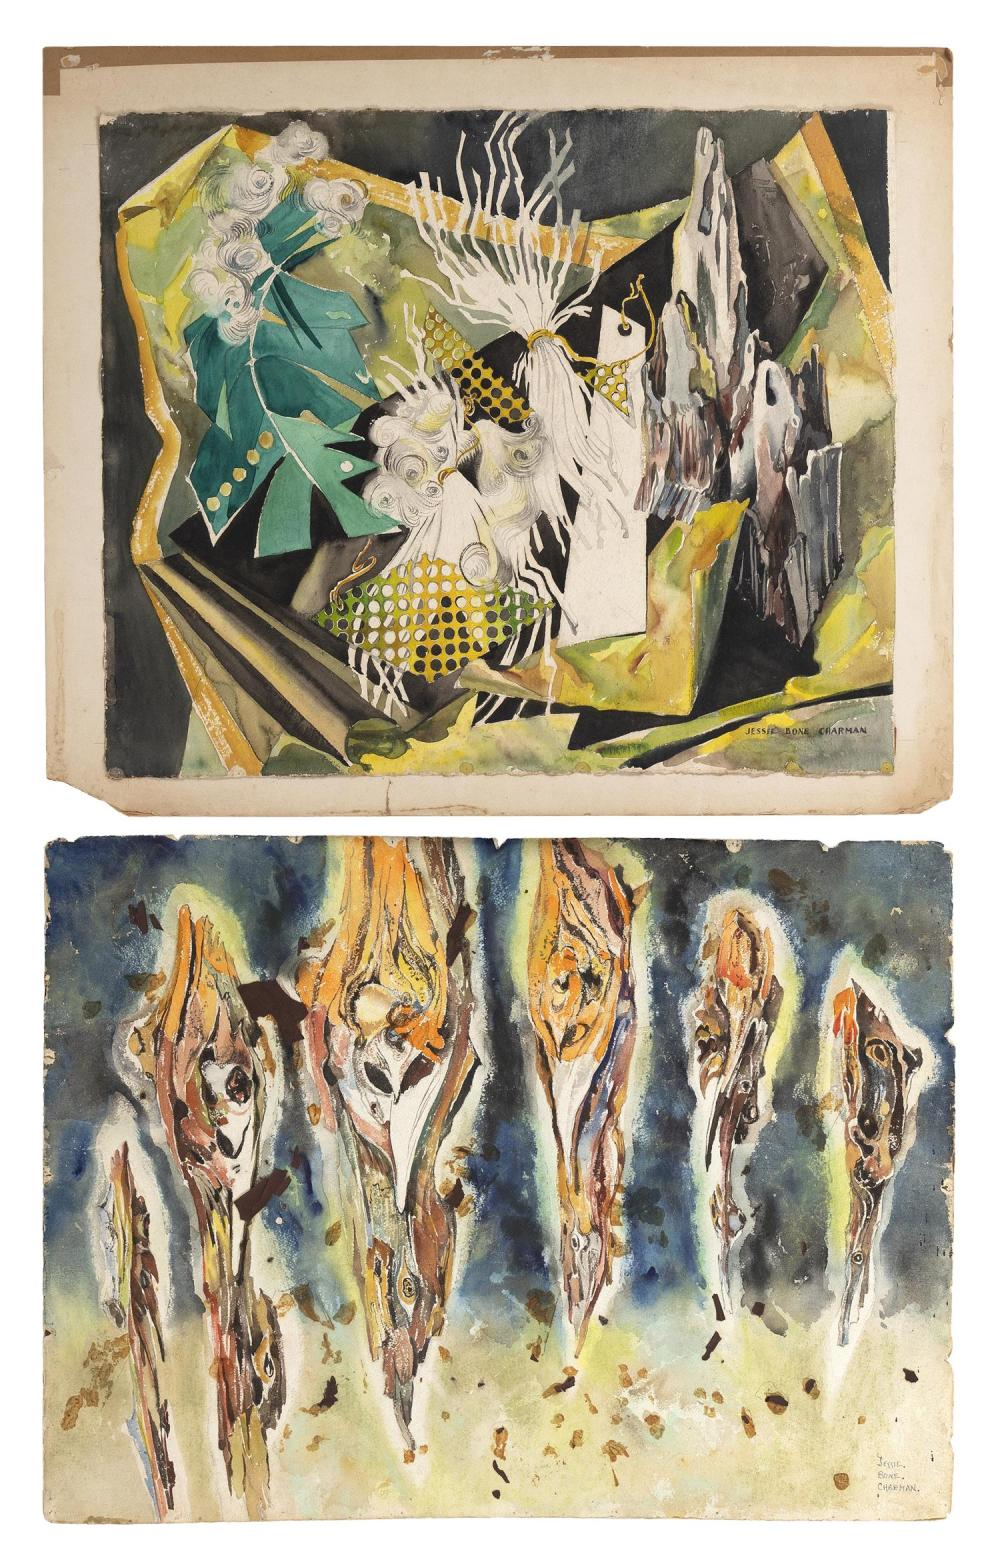 "JESSIE BONE CHARMAN, New York, 1895-1986, Two abstracts., Watercolors on paper, 22"" x 30"". Unframed."